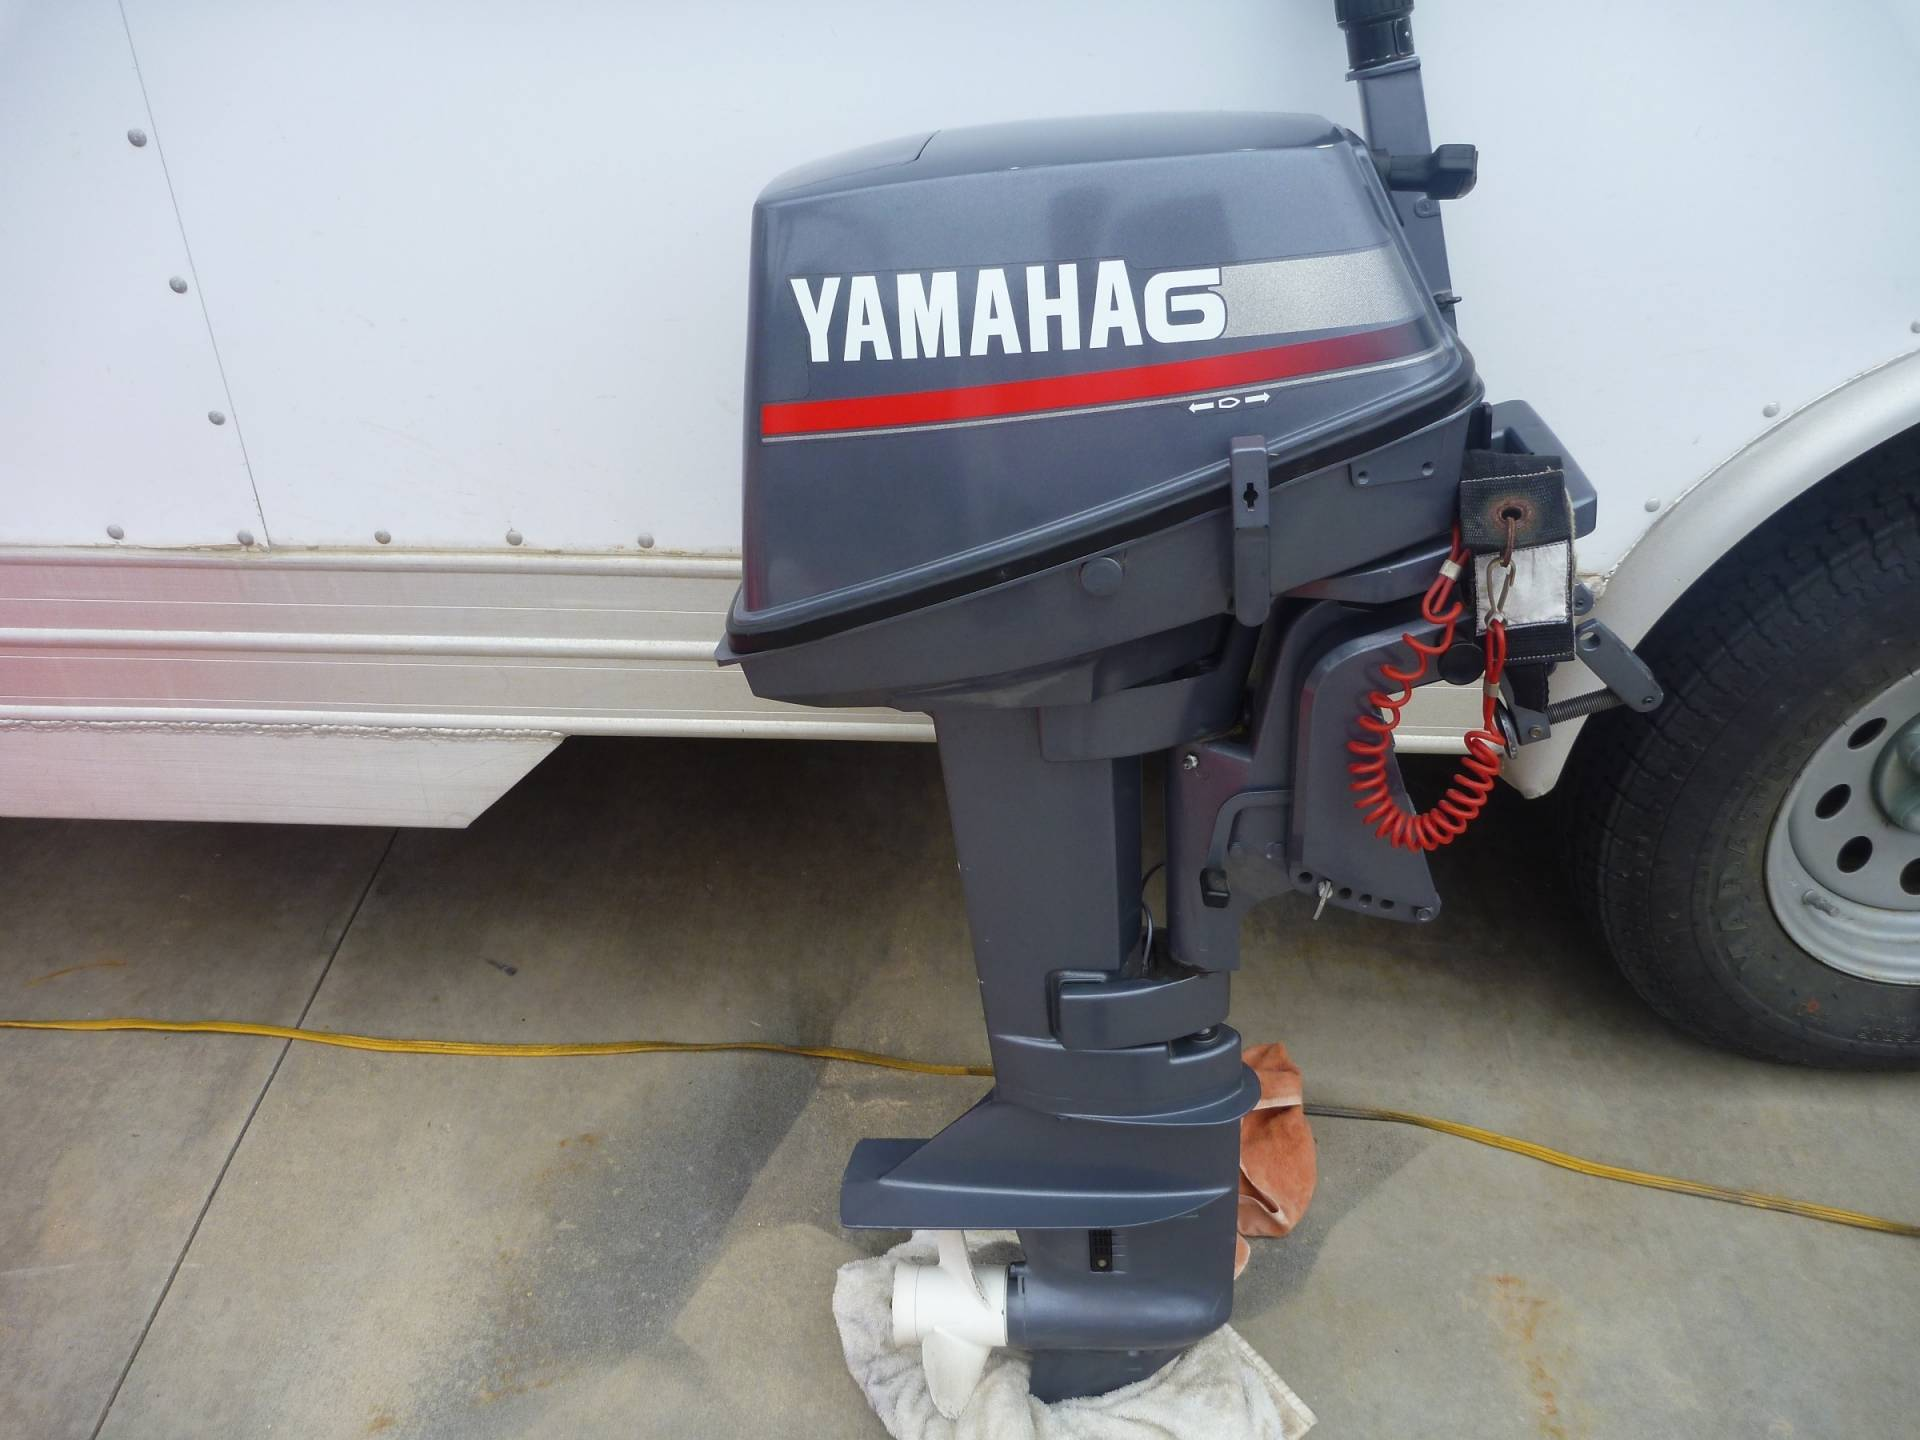 Yamaha 6hp outboard saltwater fishing forums for Yamaha 6hp outboard motor